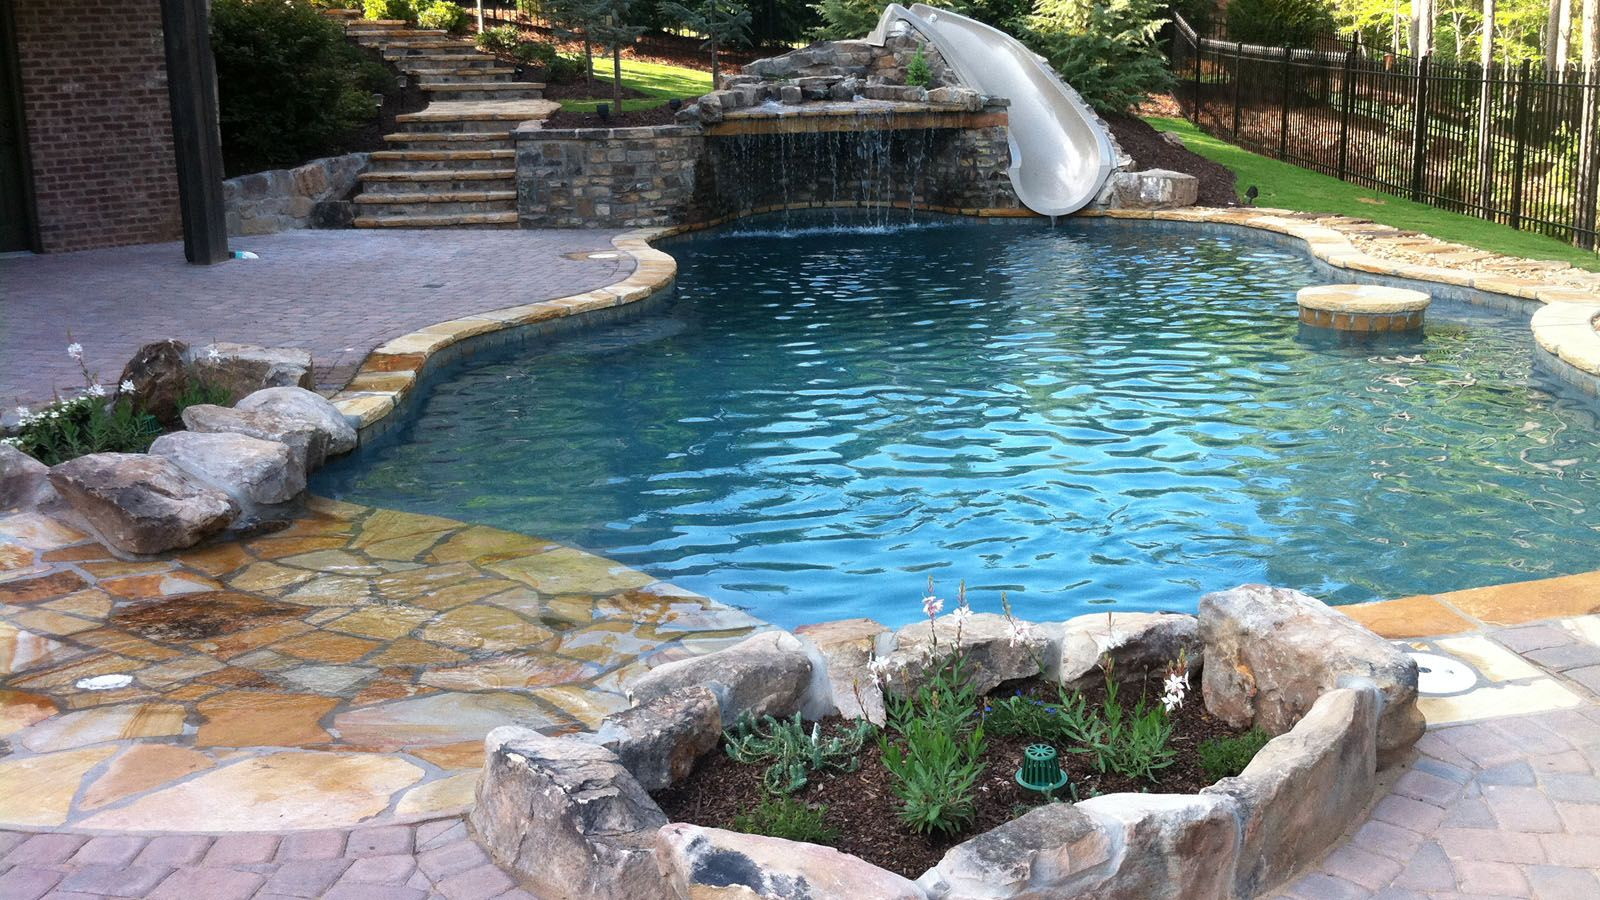 Beach entry pools design naturals ideas for house pinterest pools natural and pool designs Beach entry swimming pool designs